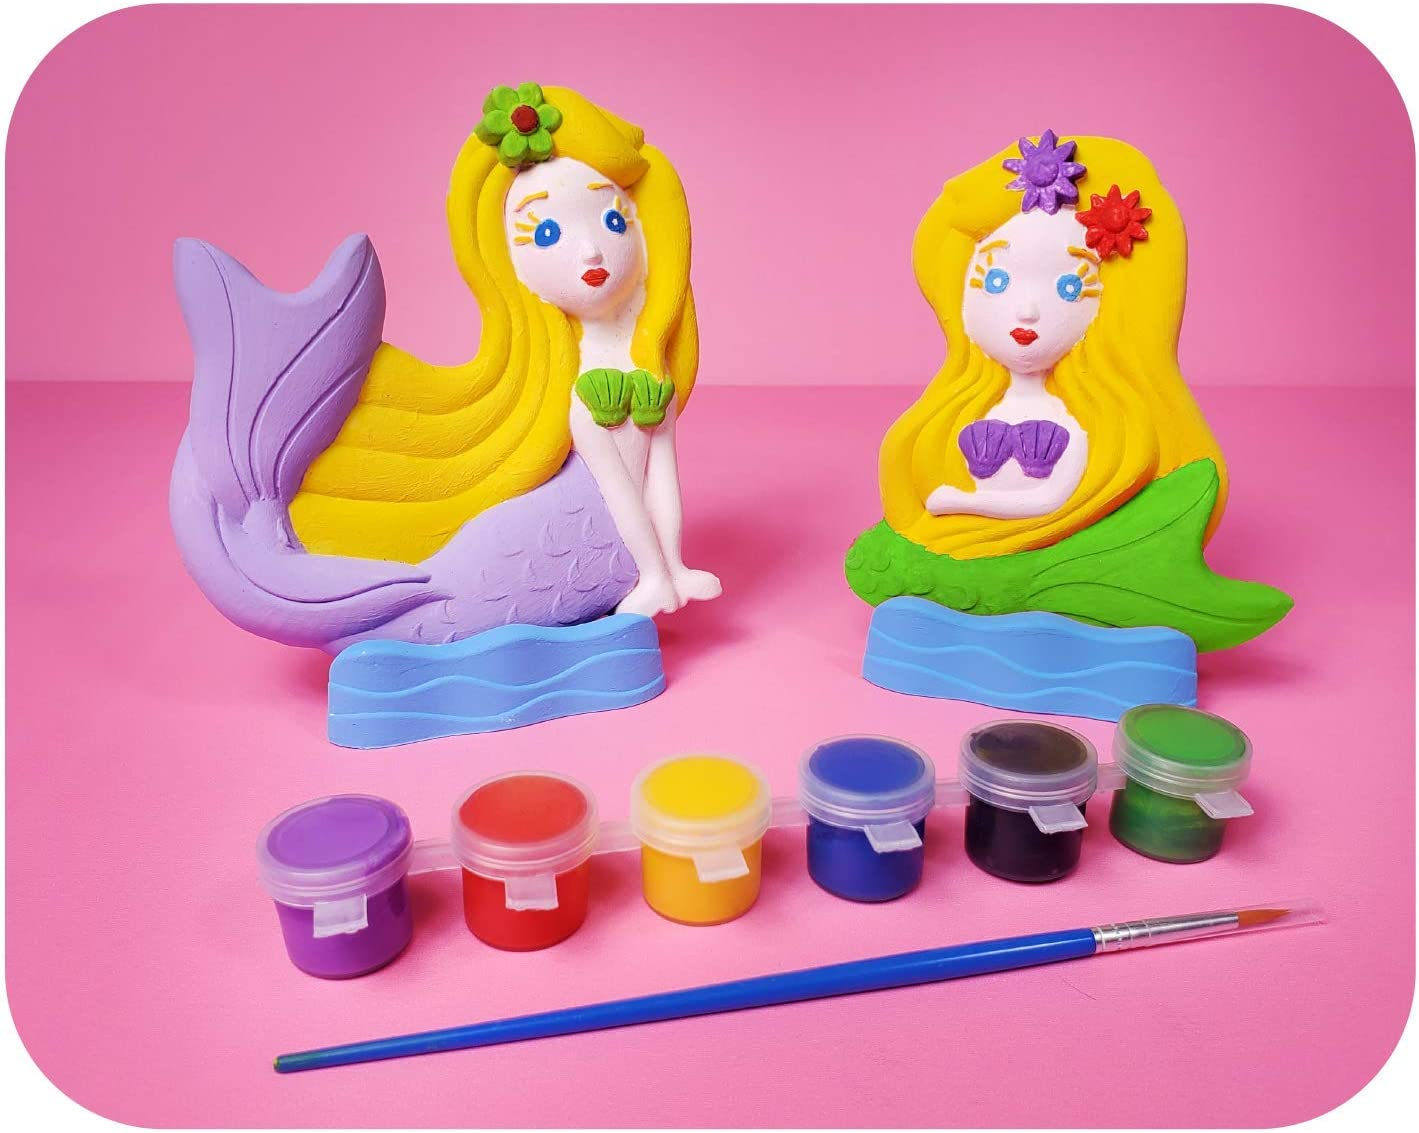 Perfect Craft Magical Unicorns Cast /& Paint Kit with Perfect Cast Casting Material